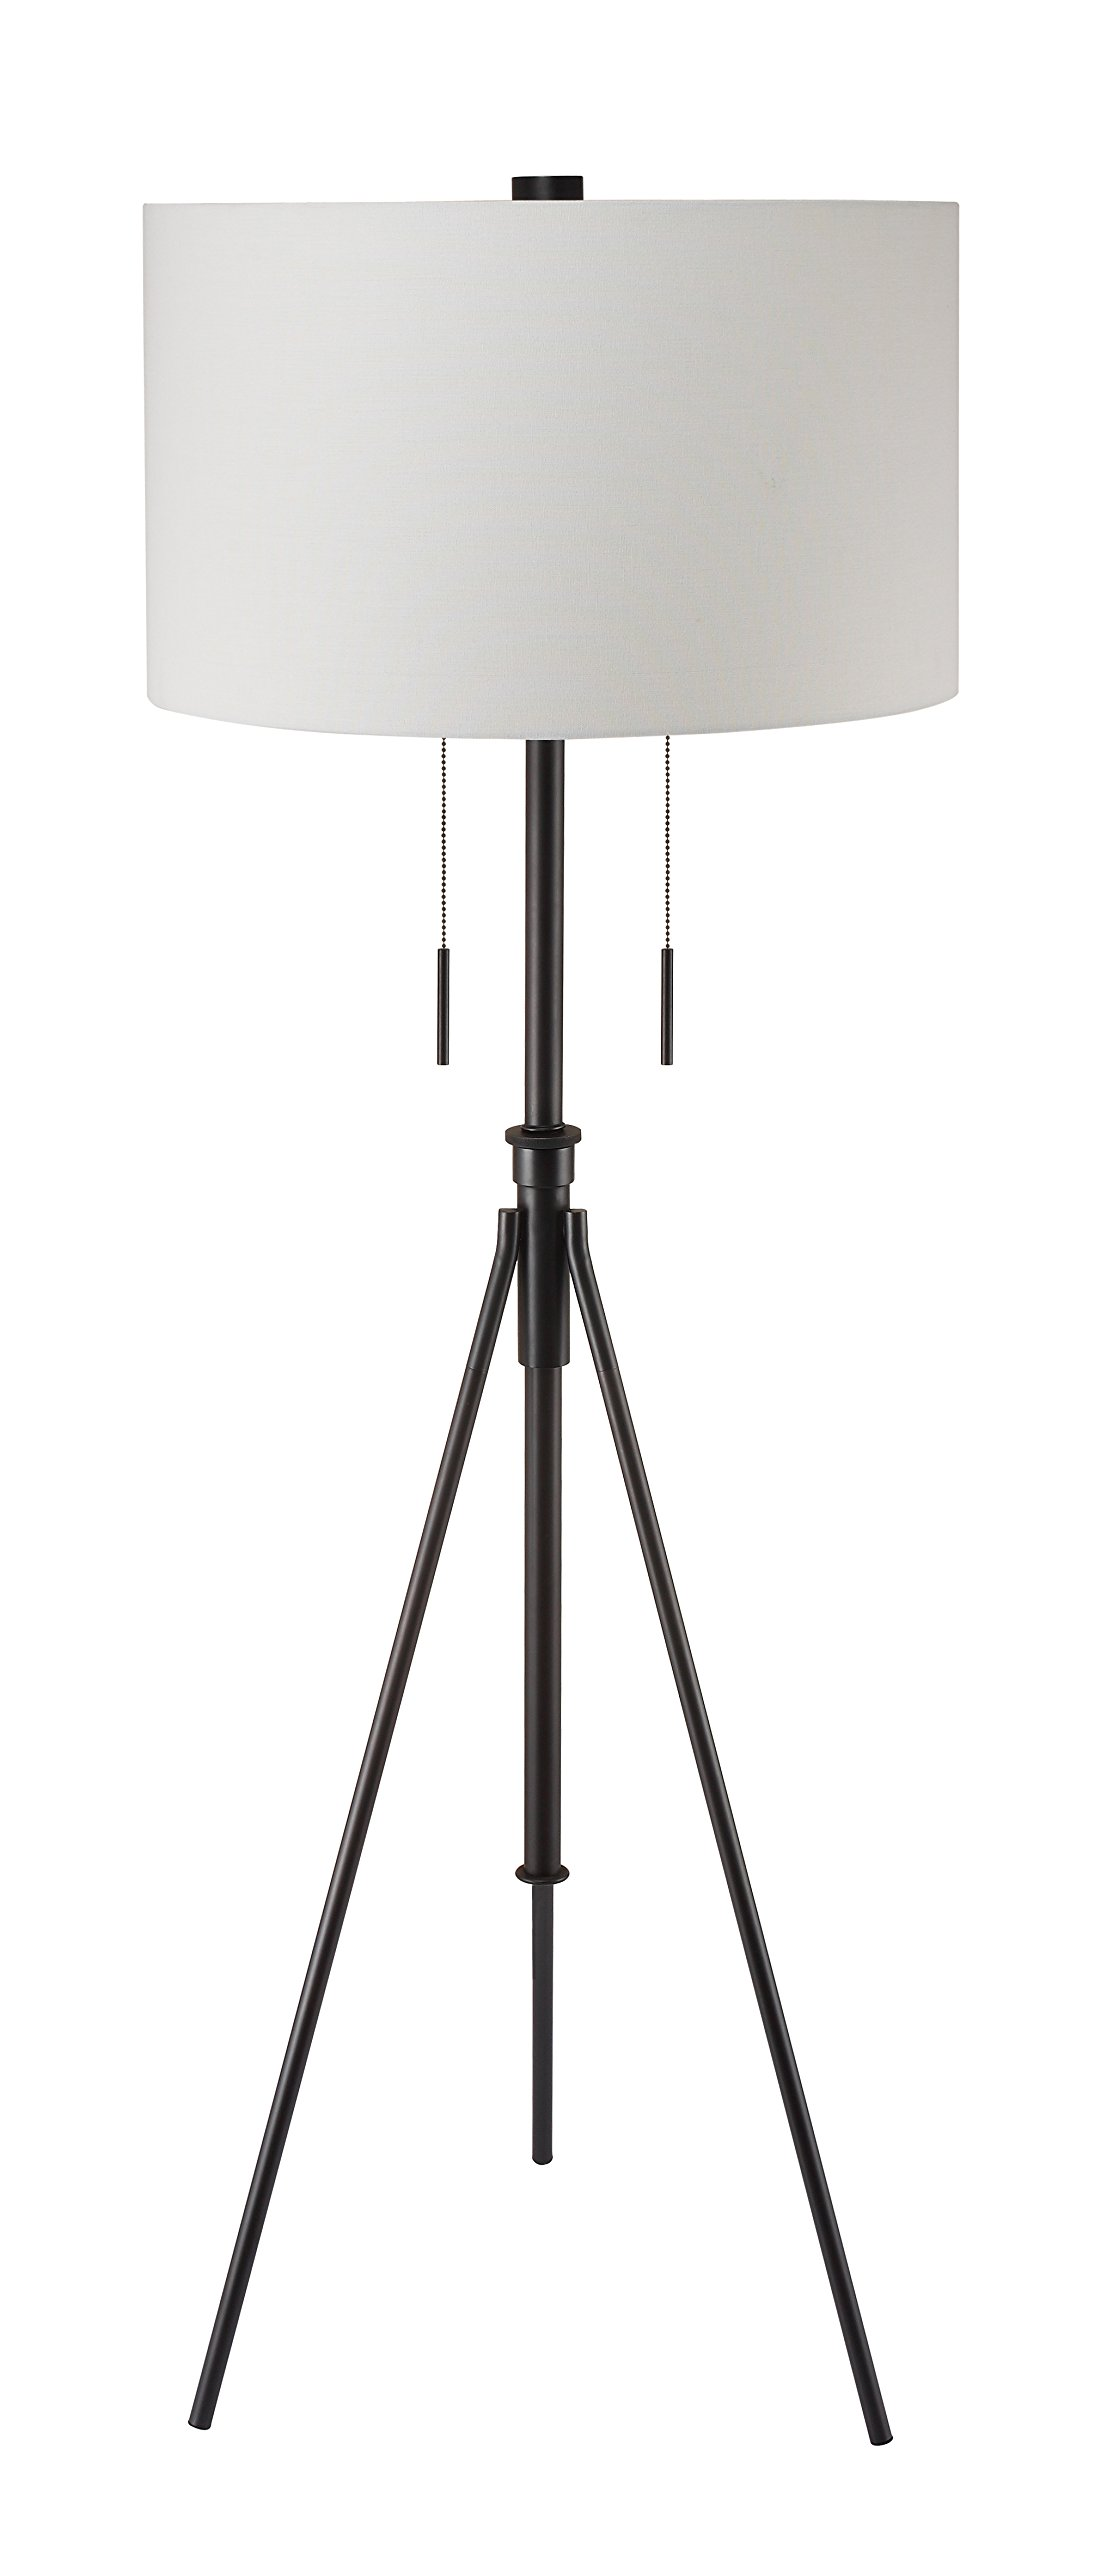 Decorator's Lighting 17056ORB Adjustable Tripod Floor Lamp H, 71.75'' H, Oiled Rubbed Bronze by Decorator's Lighting